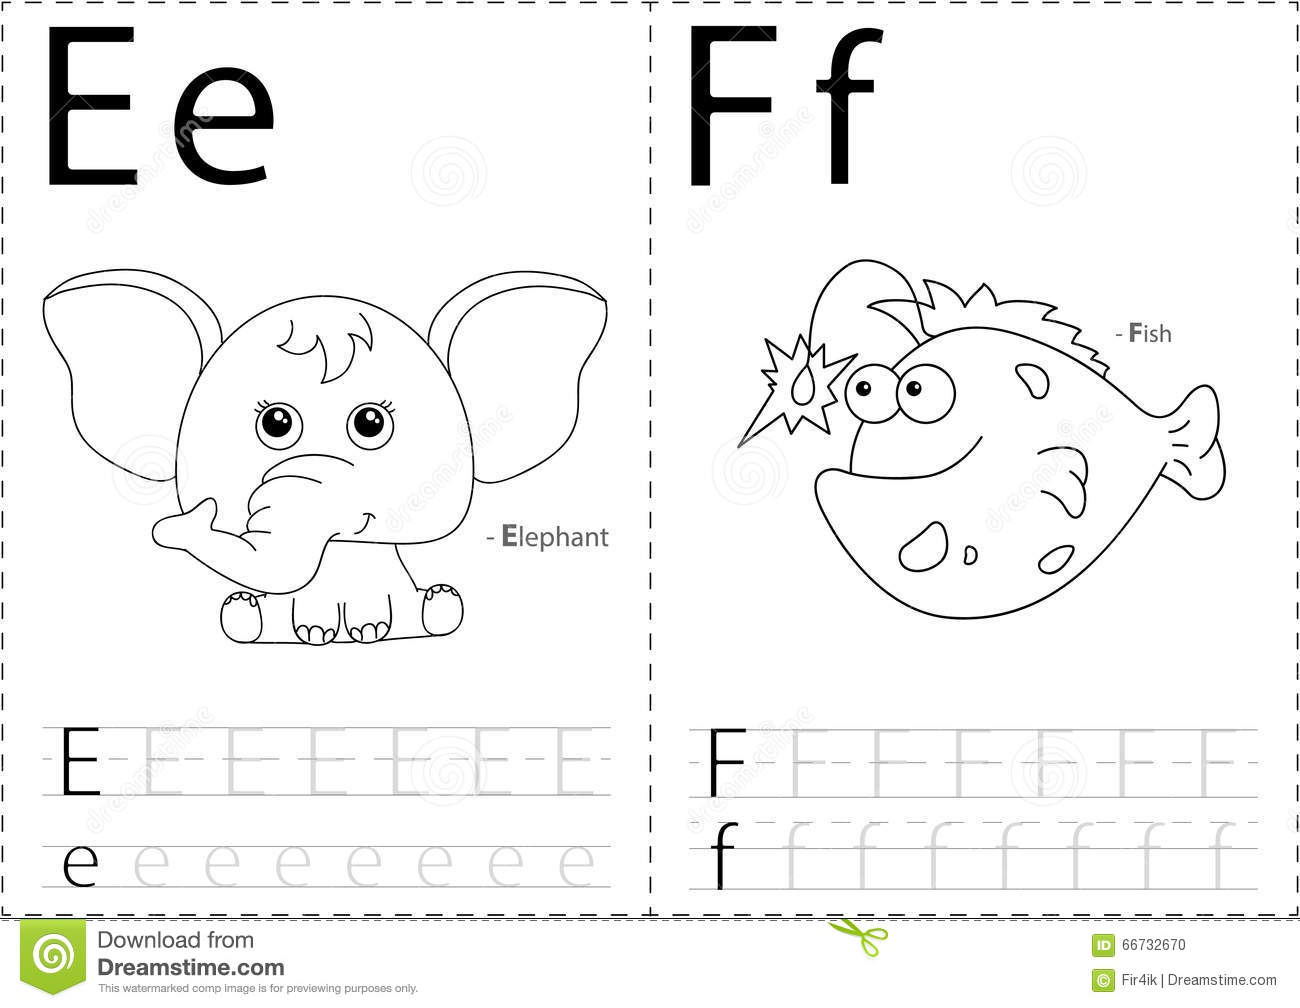 Cartoon Elephant And Fish Alphabet Tracing Worksheet